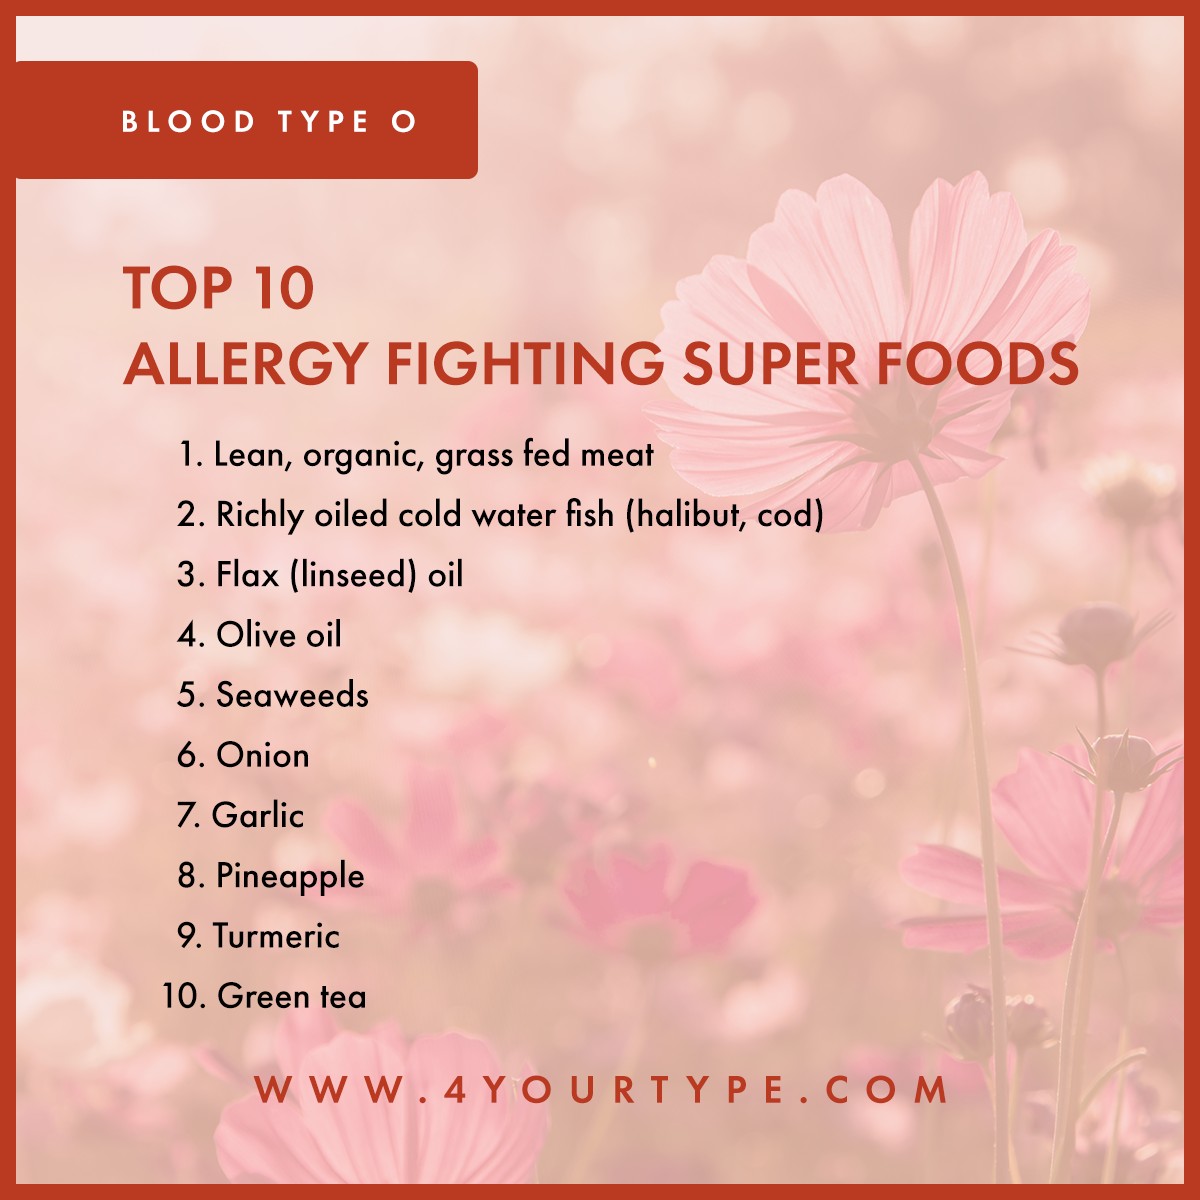 Blood Type O - Allergy Fighting Foods